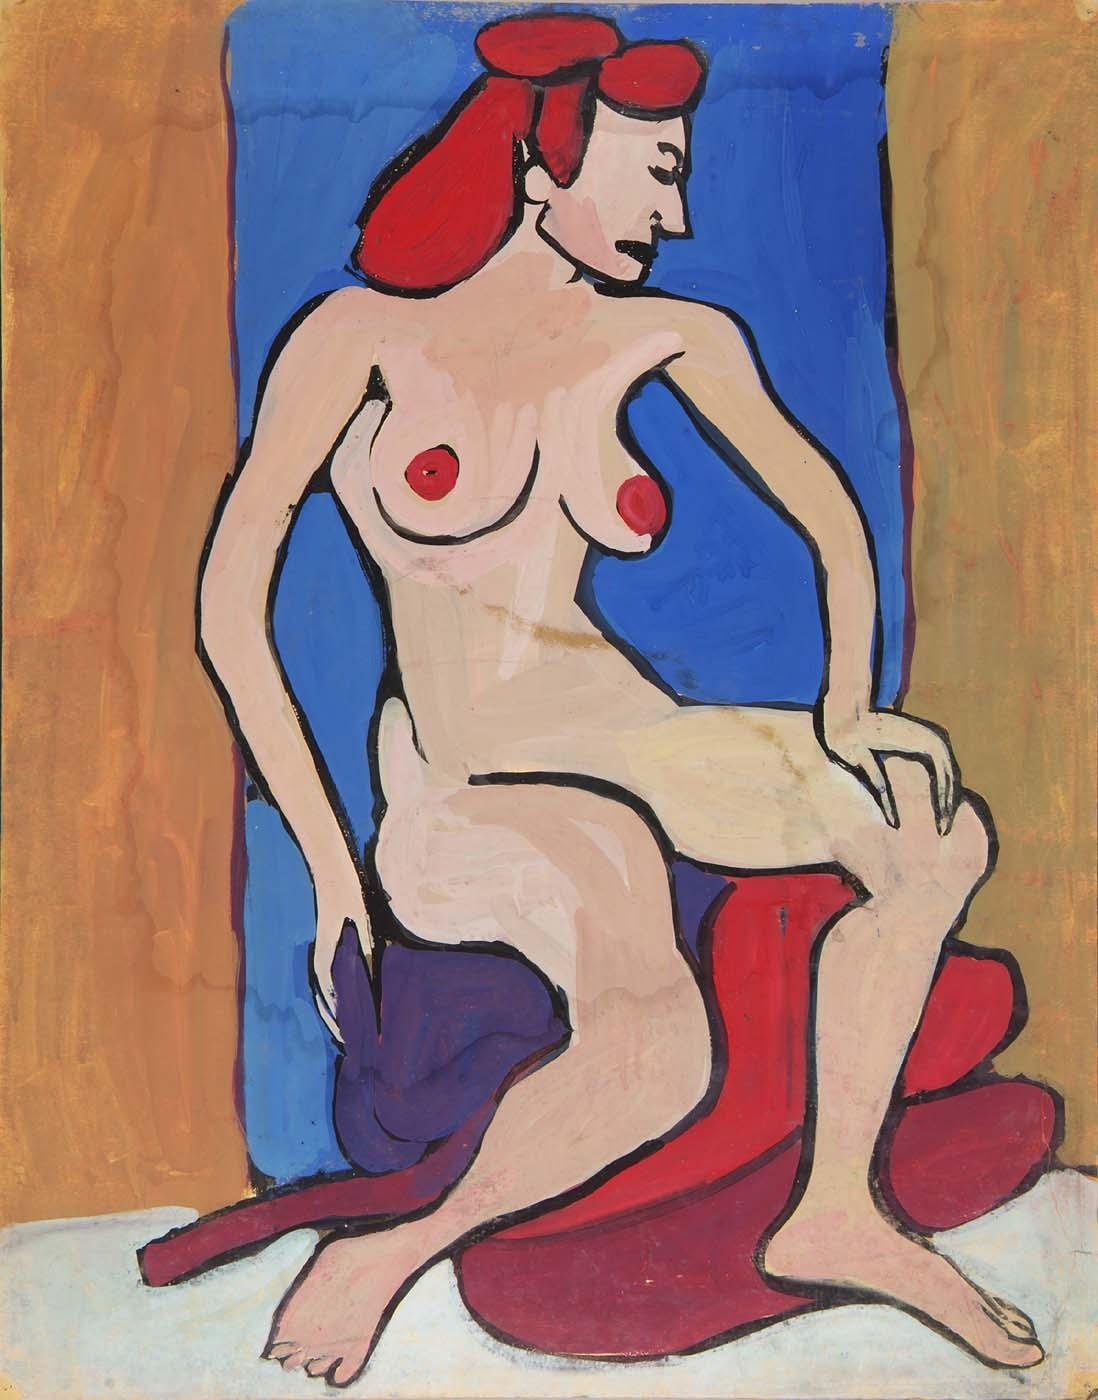 Female Nude with Red Hair Seated on Pillows - William H. Johnson